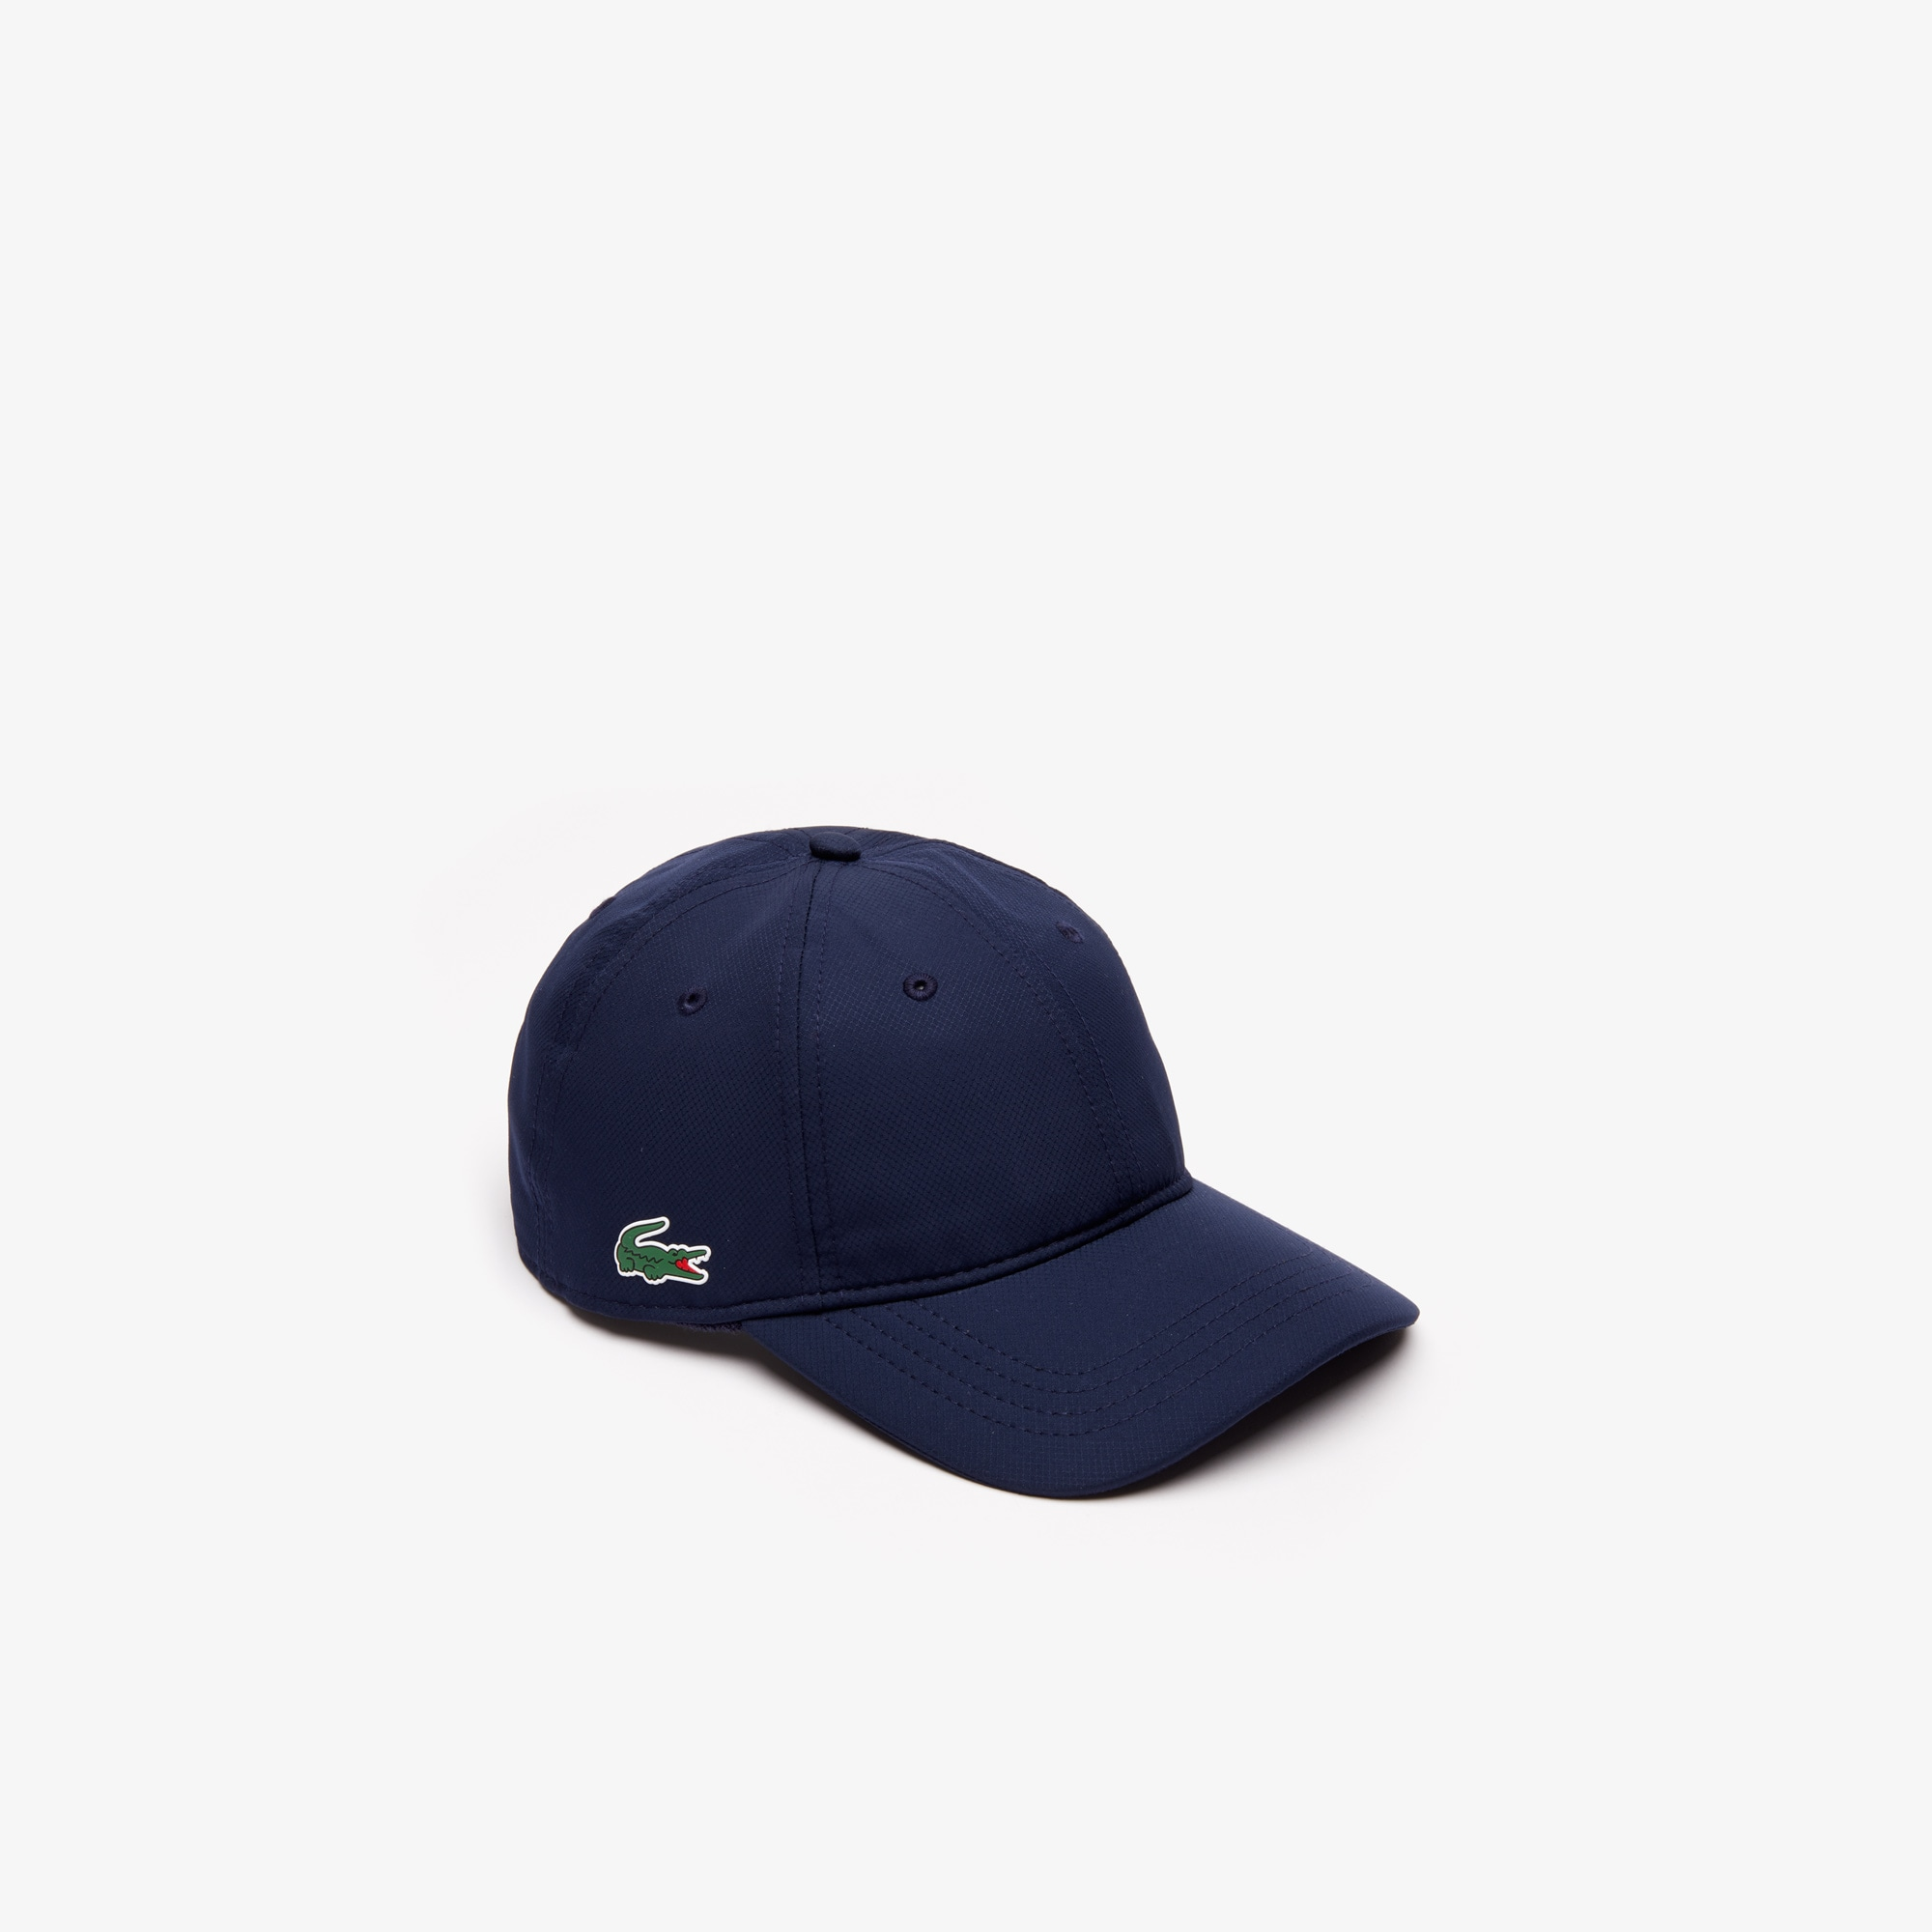 Lacoste Men/'s Poly Baseball Cap Navy Blue One Size